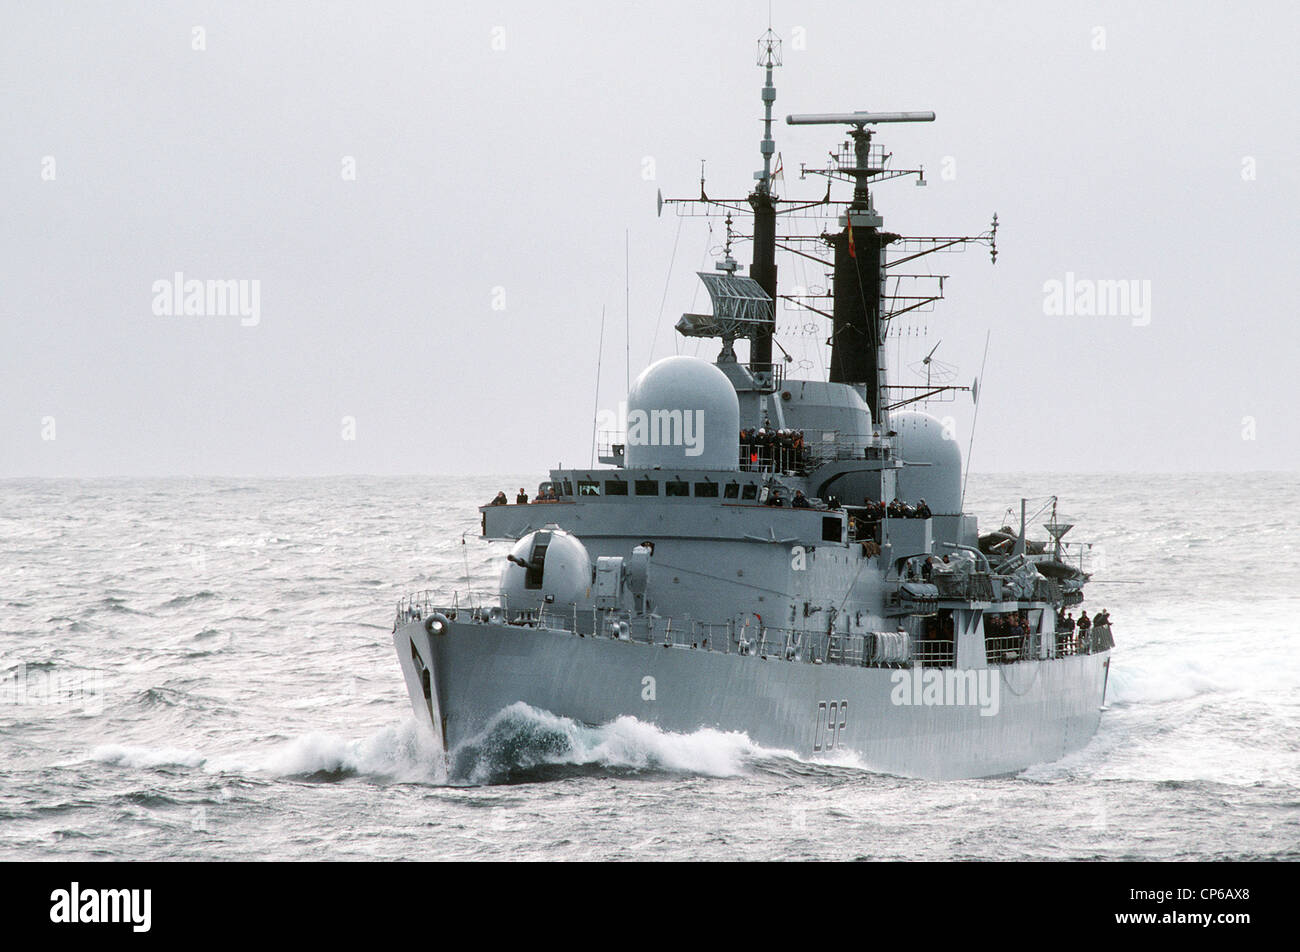 A port bow view of the British destroyer HMS LIVERPOOL (D 92) underway during NATO Exercise NORTHERN WEDDING 86. - Stock Image